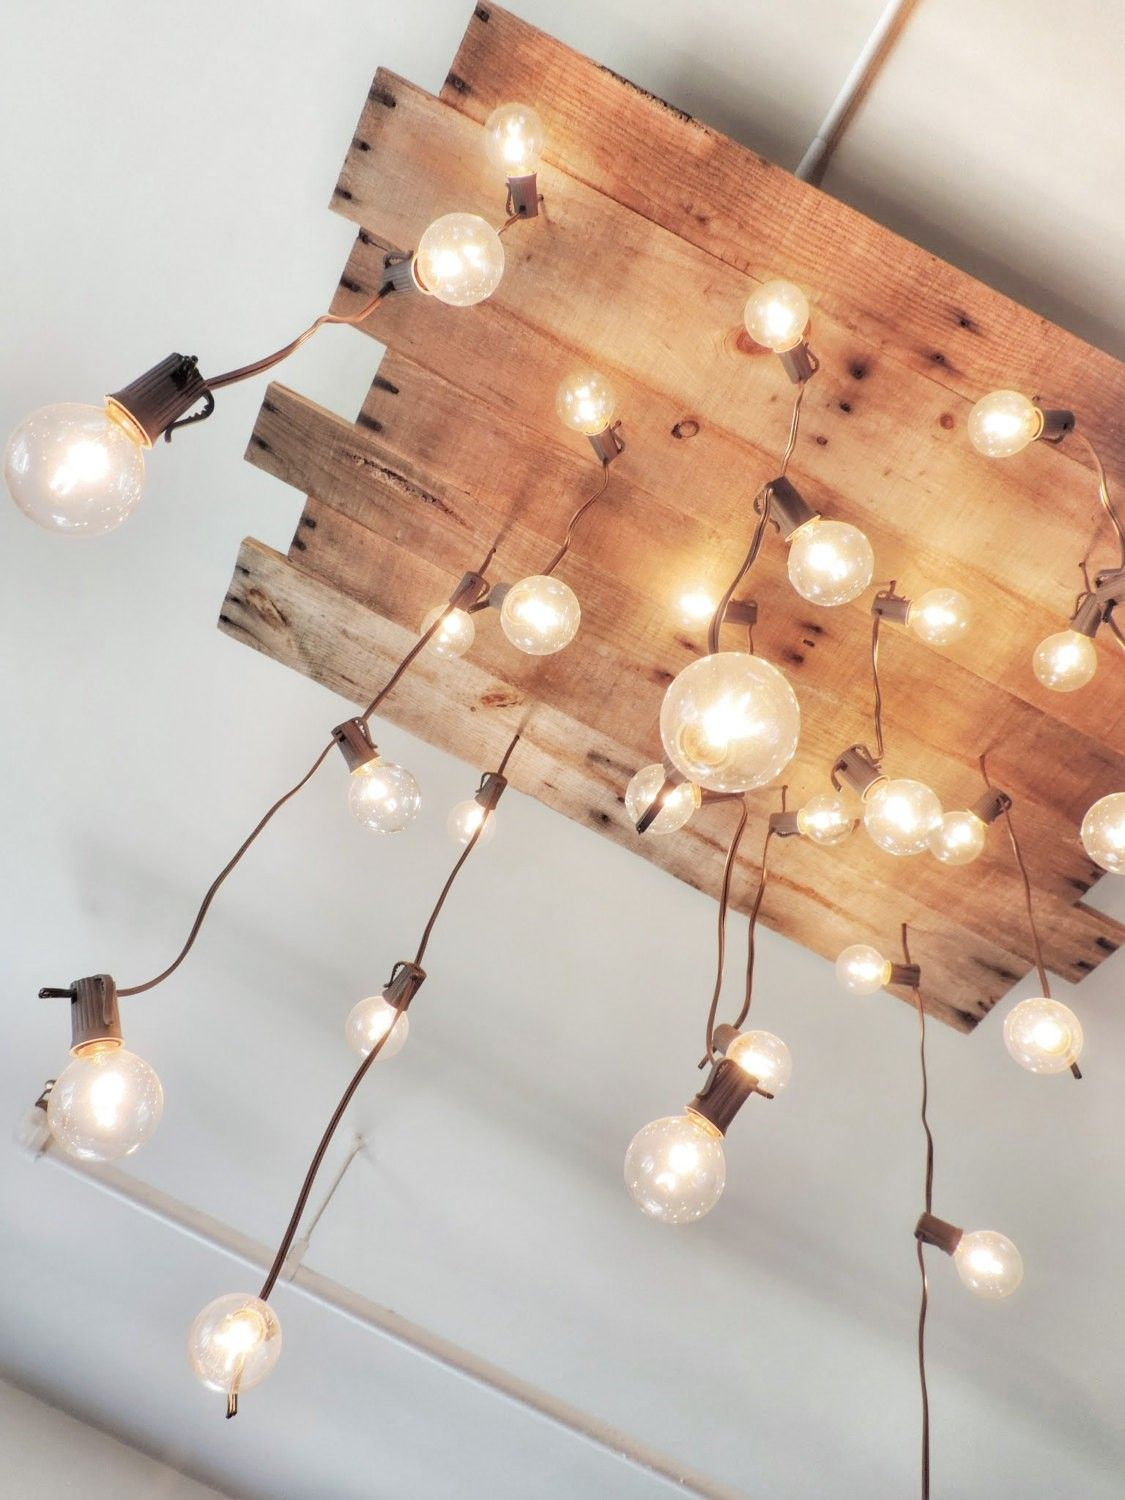 10 inventive ideas of wood pallet lamps pendant chandelier wood top 10 best inventive ideas to recycle wood pallets into lamps pendant chandelier lighting table arubaitofo Image collections